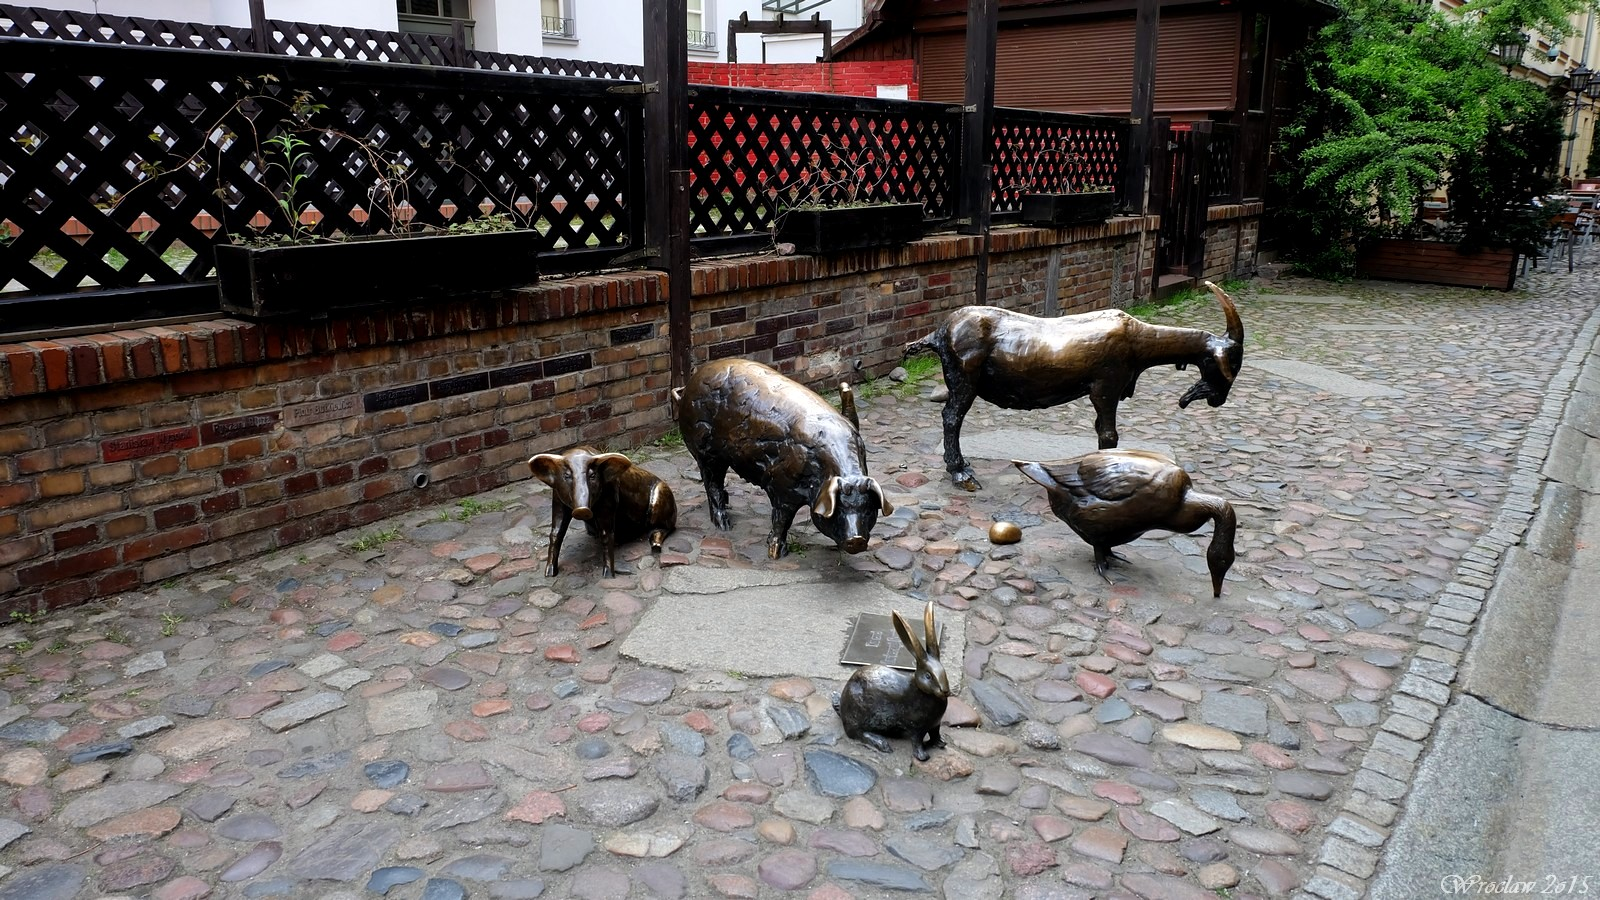 Memorial to Slaughtered Animals, Jatki, Wroclaw, Poland